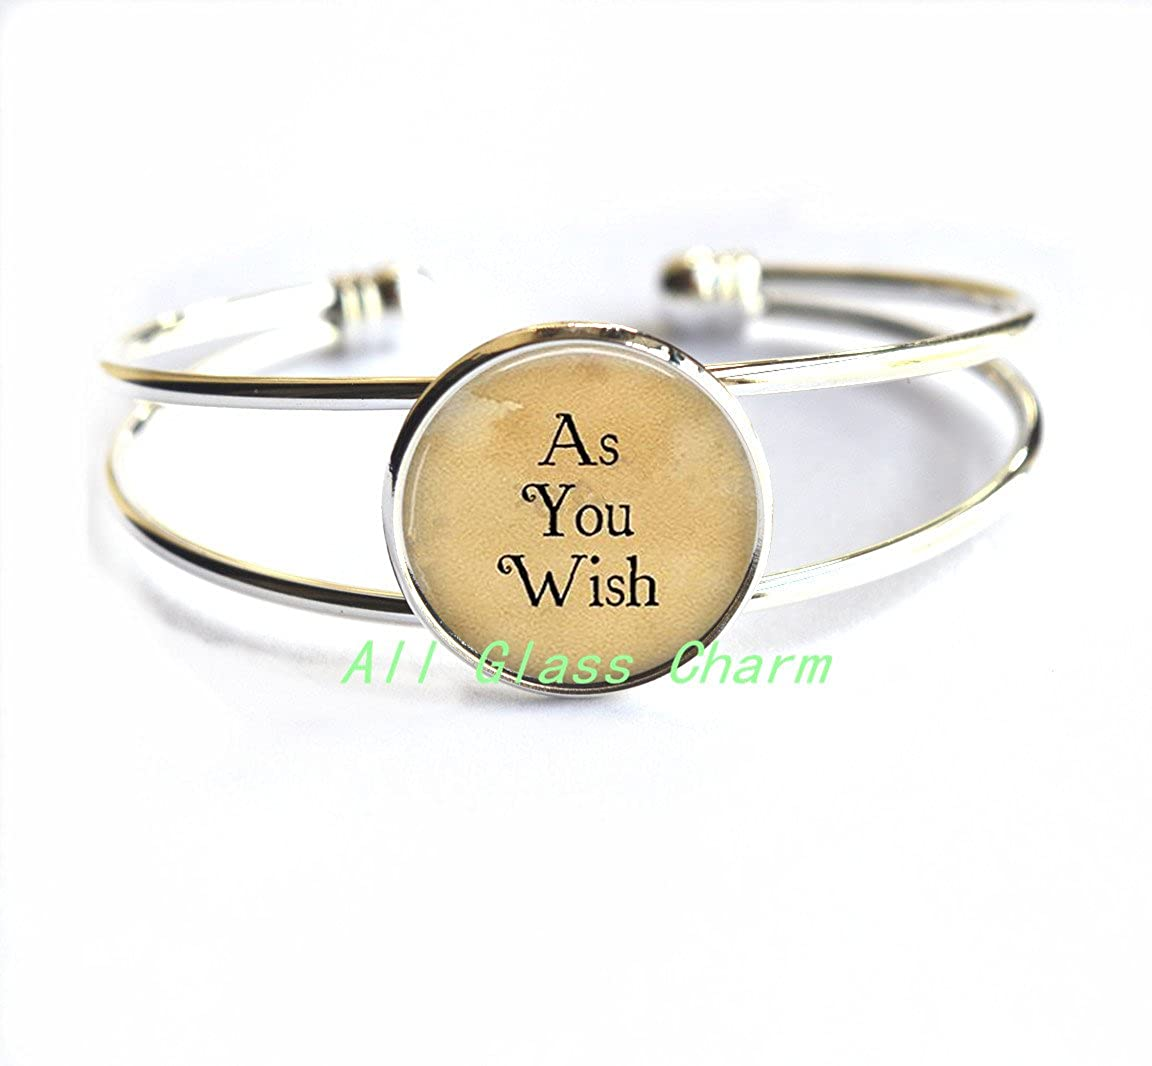 At Your Service Bracelet Charming Bracelet,As You Wish Bracelet Bracelets As You Wish Jewelry Literary Quote Jewelry,AS083 Service and Duty